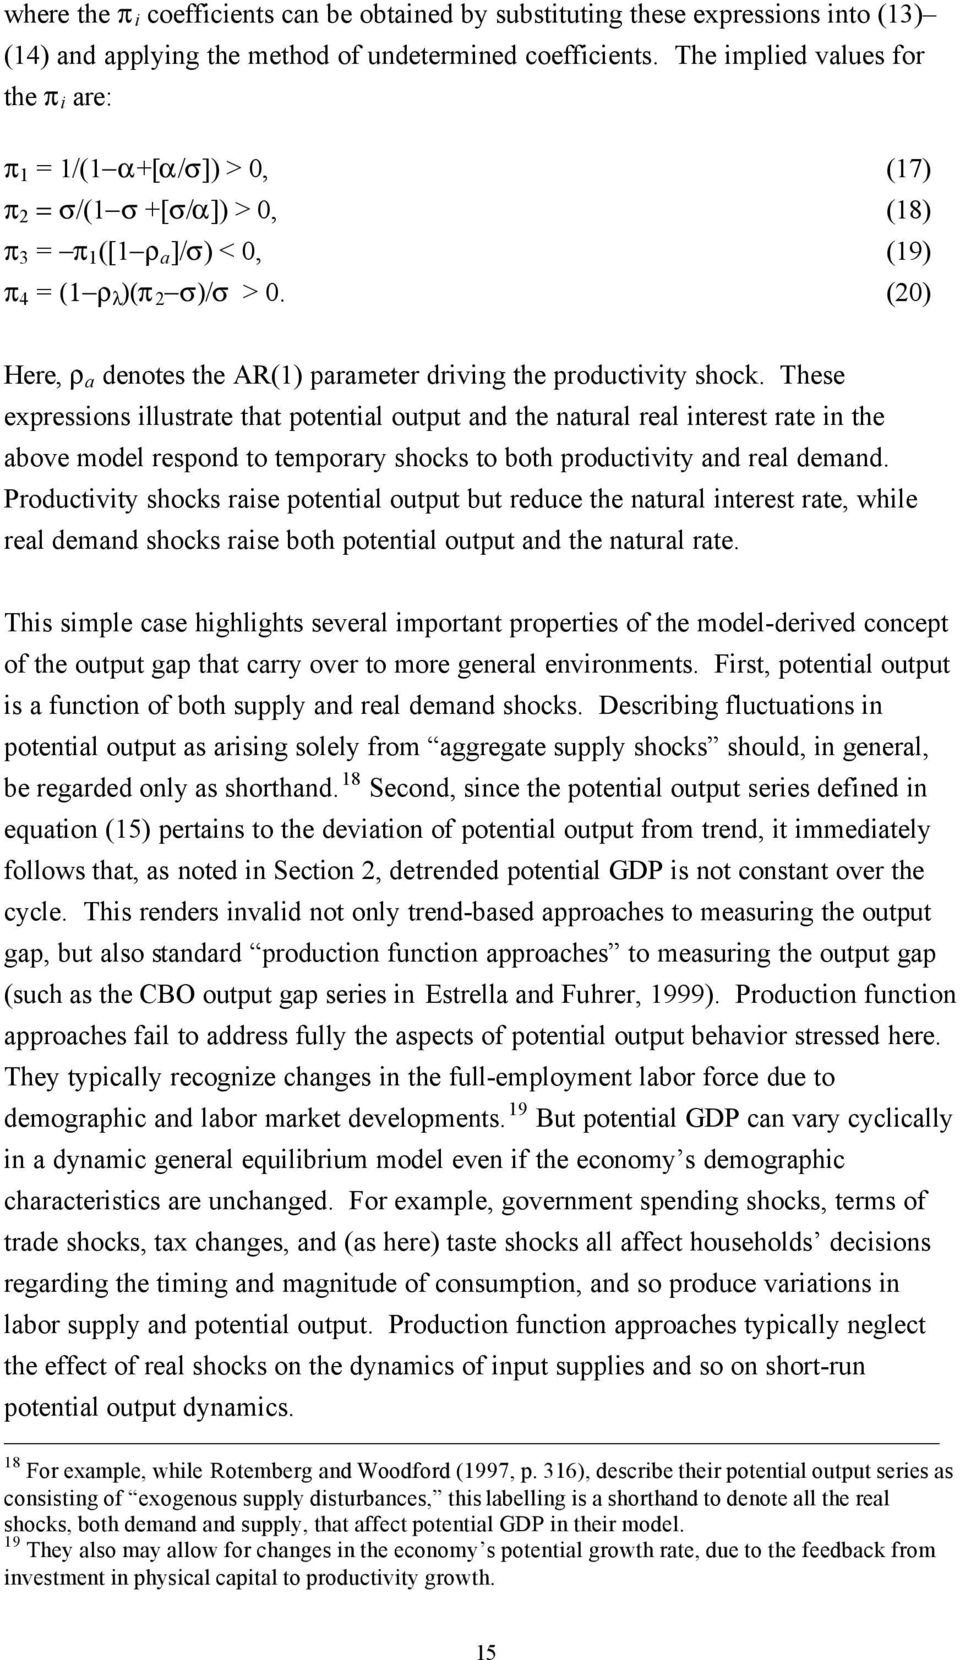 (20) Here, ρ a denotes the AR(1) parameter driving the productivity shock.